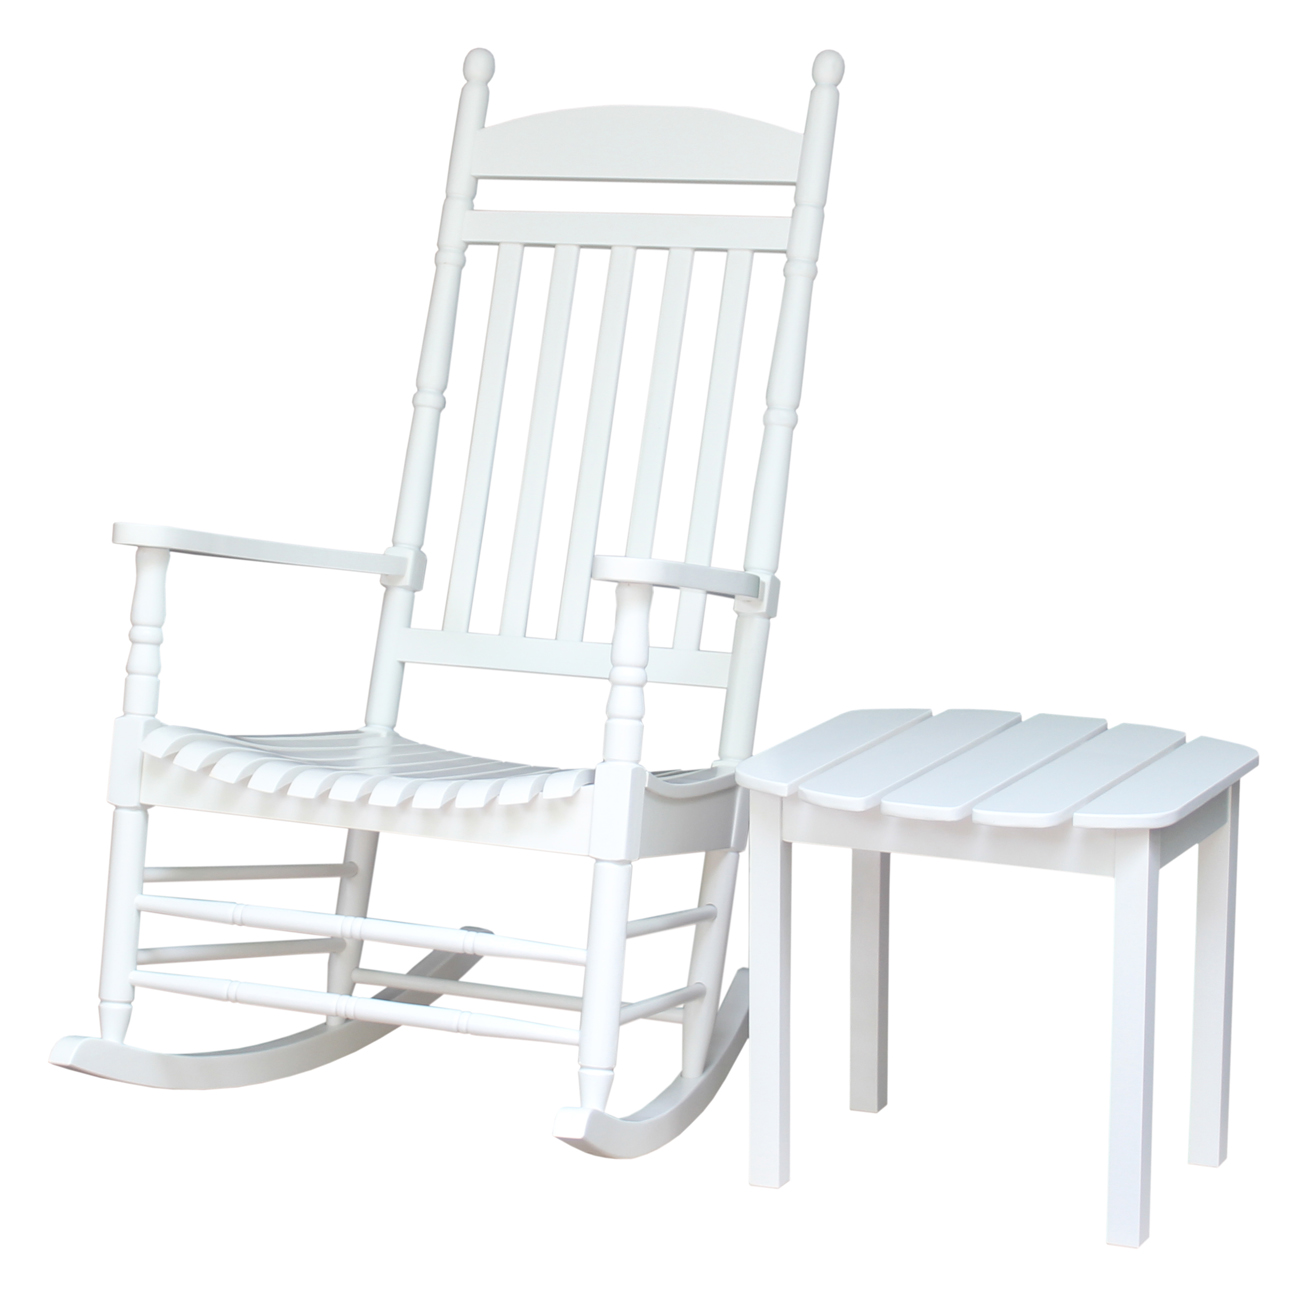 Porch Rocker and Side Table in White